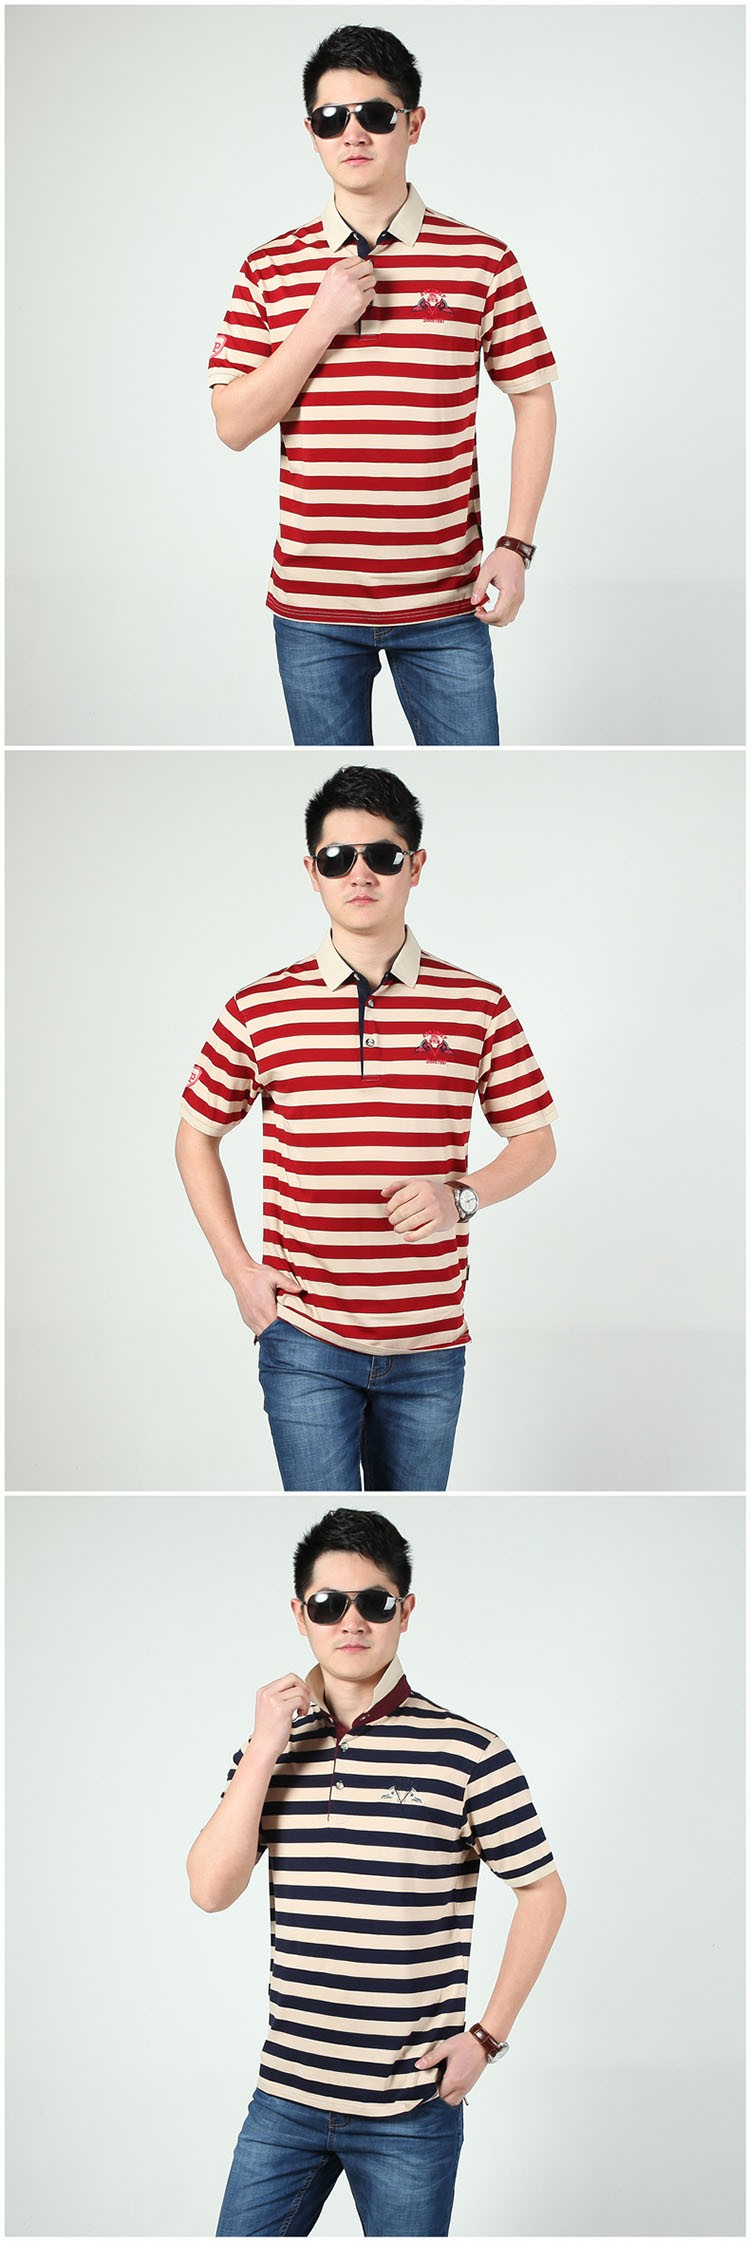 Polo Shirts Men Fashion Brand Striped Cotton Polos Slim Fit Summer Short Sleeves Male Casual Shirts Top Quality Plus Size 3XL (7)